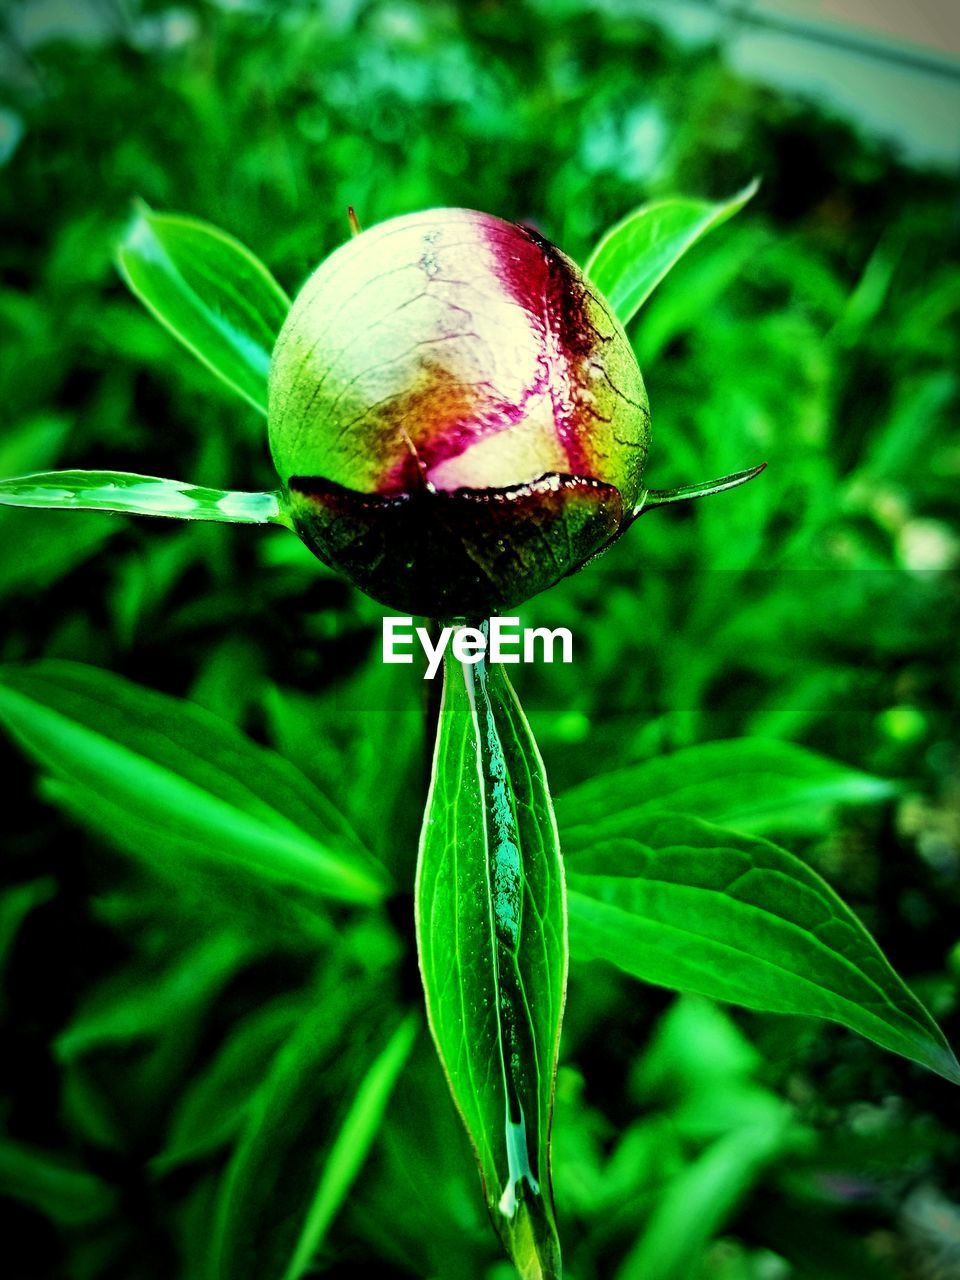 growth, plant, close-up, green color, beauty in nature, nature, leaf, plant part, freshness, fragility, food, vulnerability, no people, focus on foreground, vegetable, day, land, flower, outdoors, field